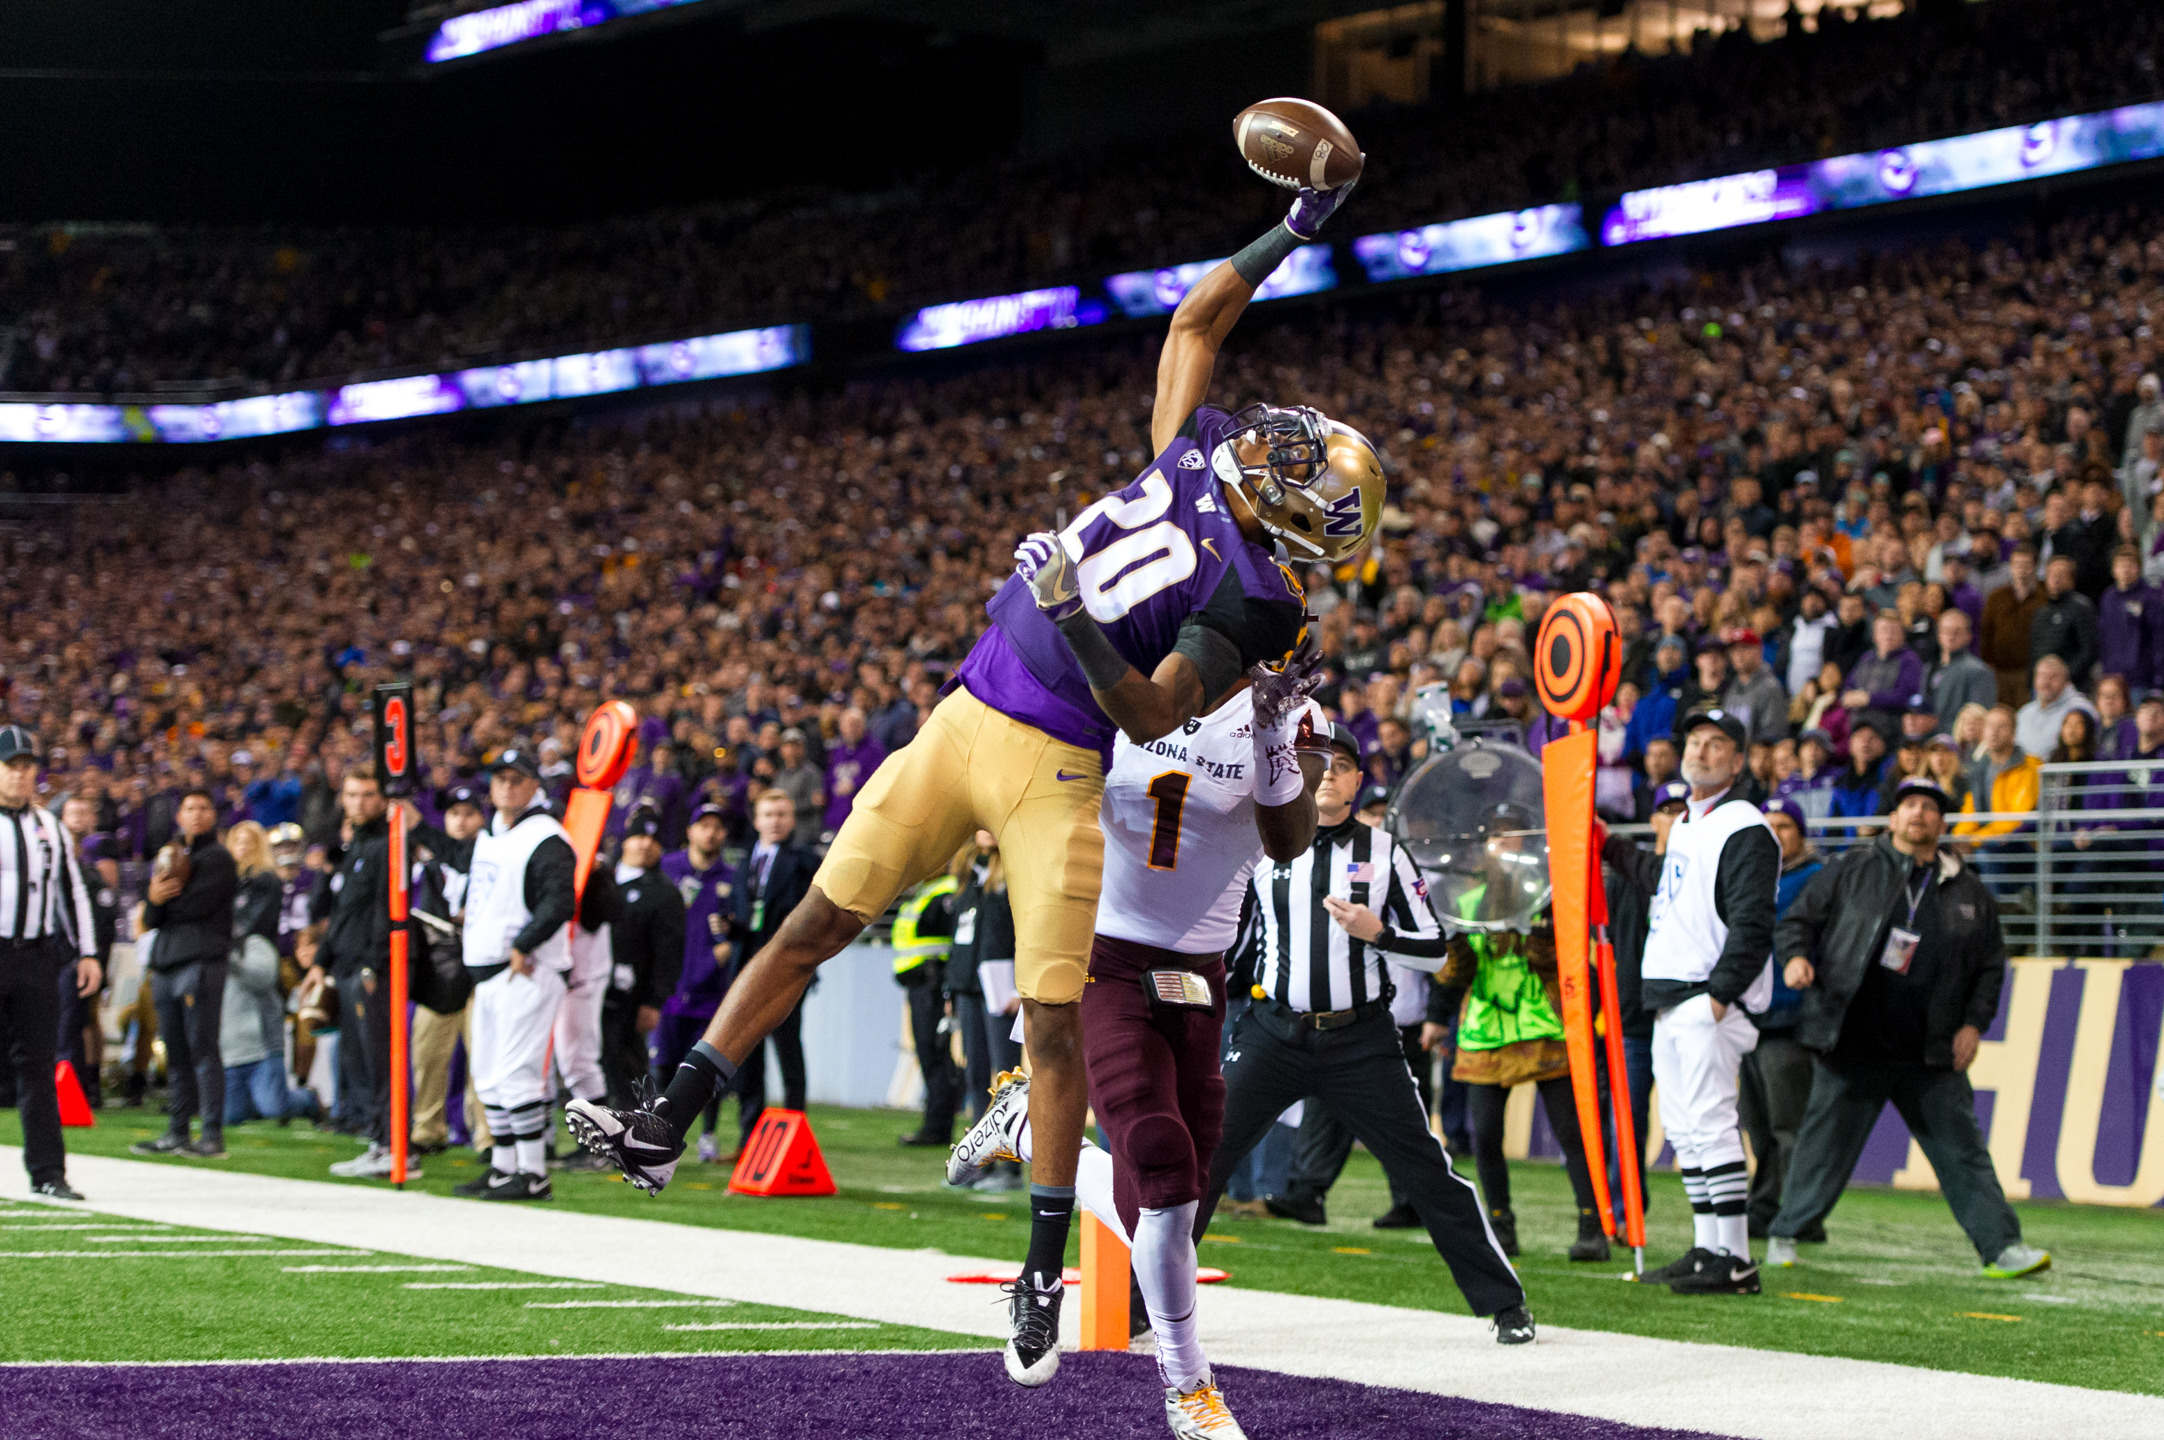 Kevin King Sportscenter Top 10 Interception Against Arizona State University